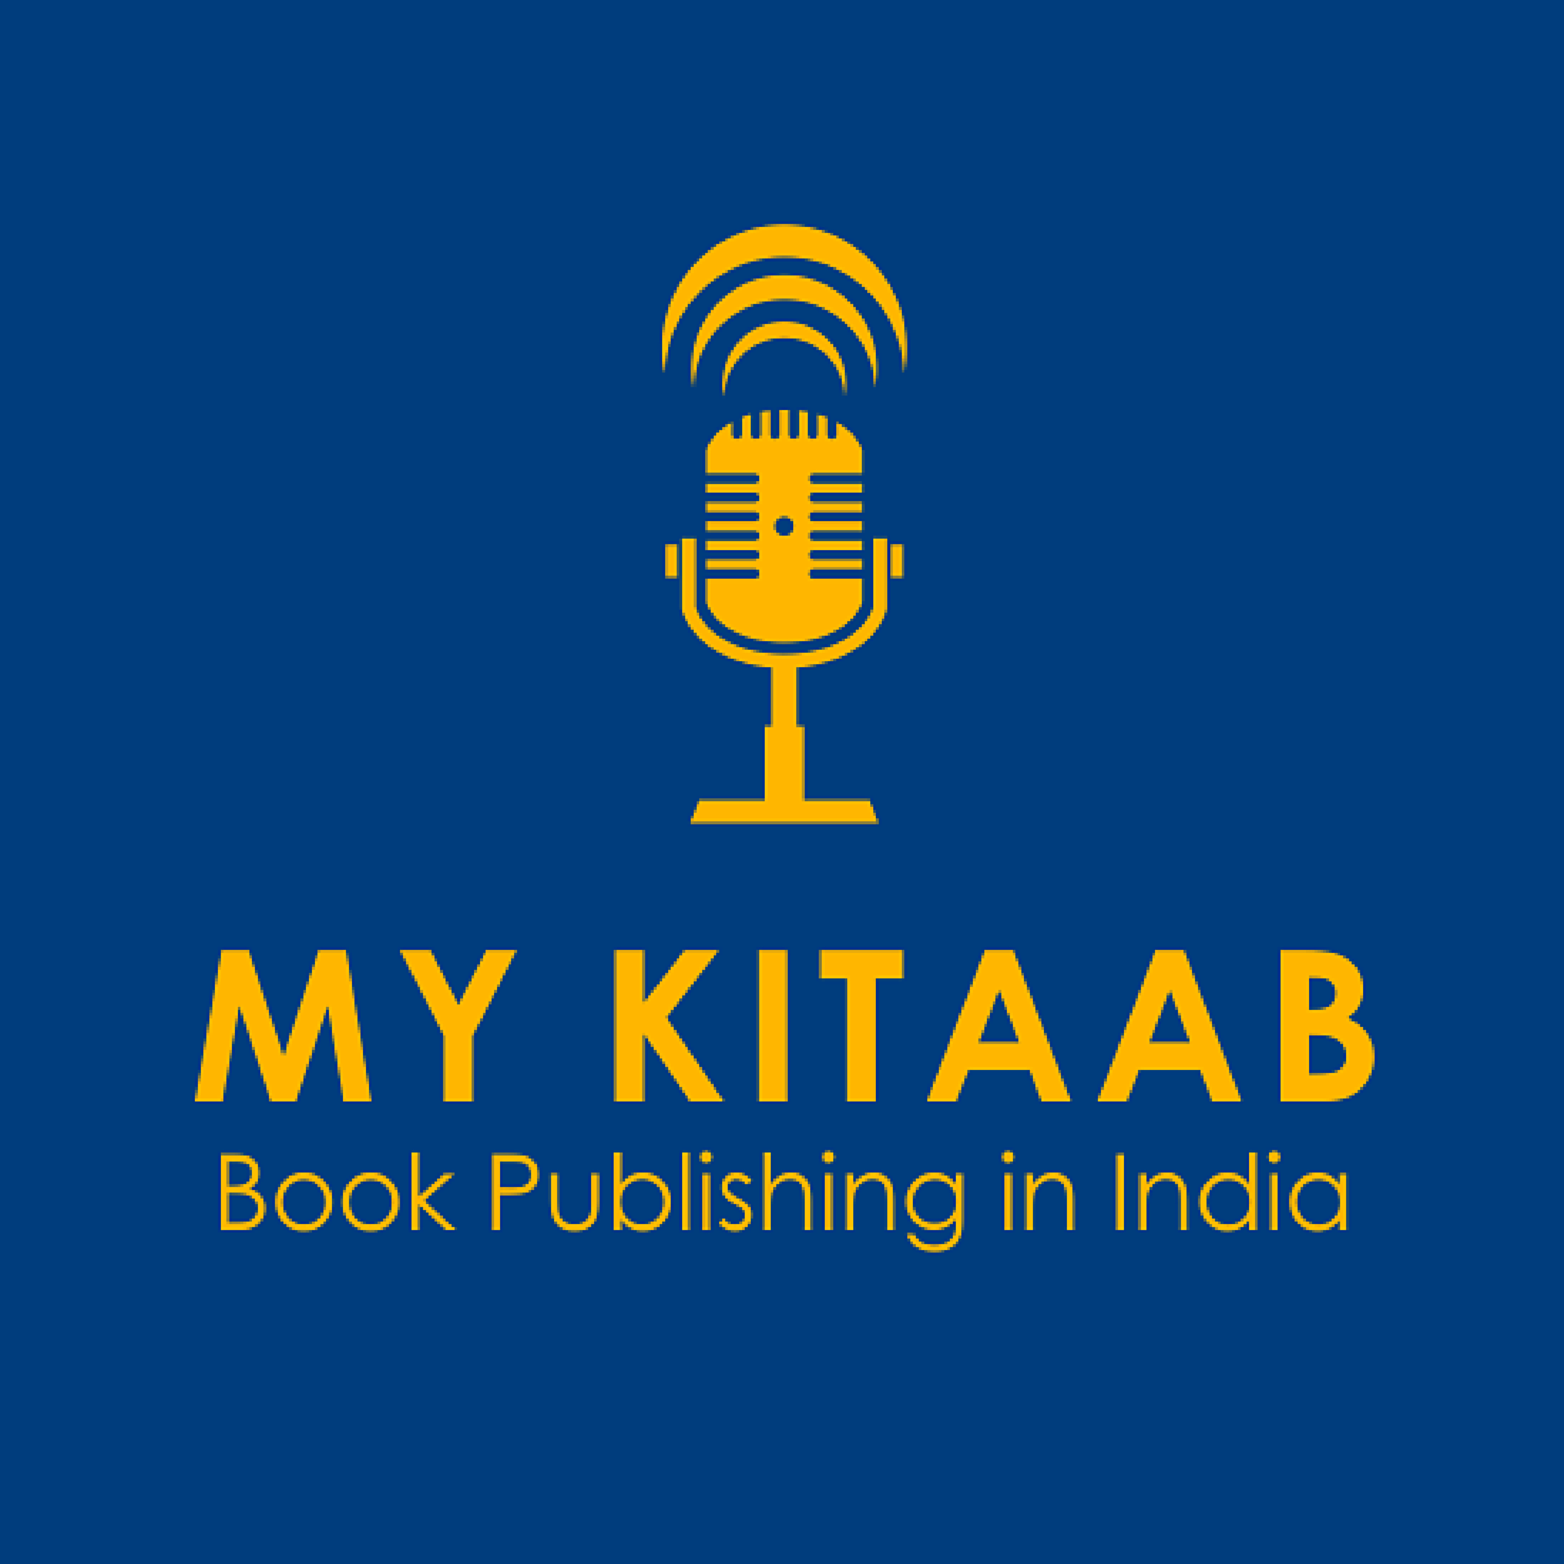 Audioboom / News on Book Publishing in India - Newscast11